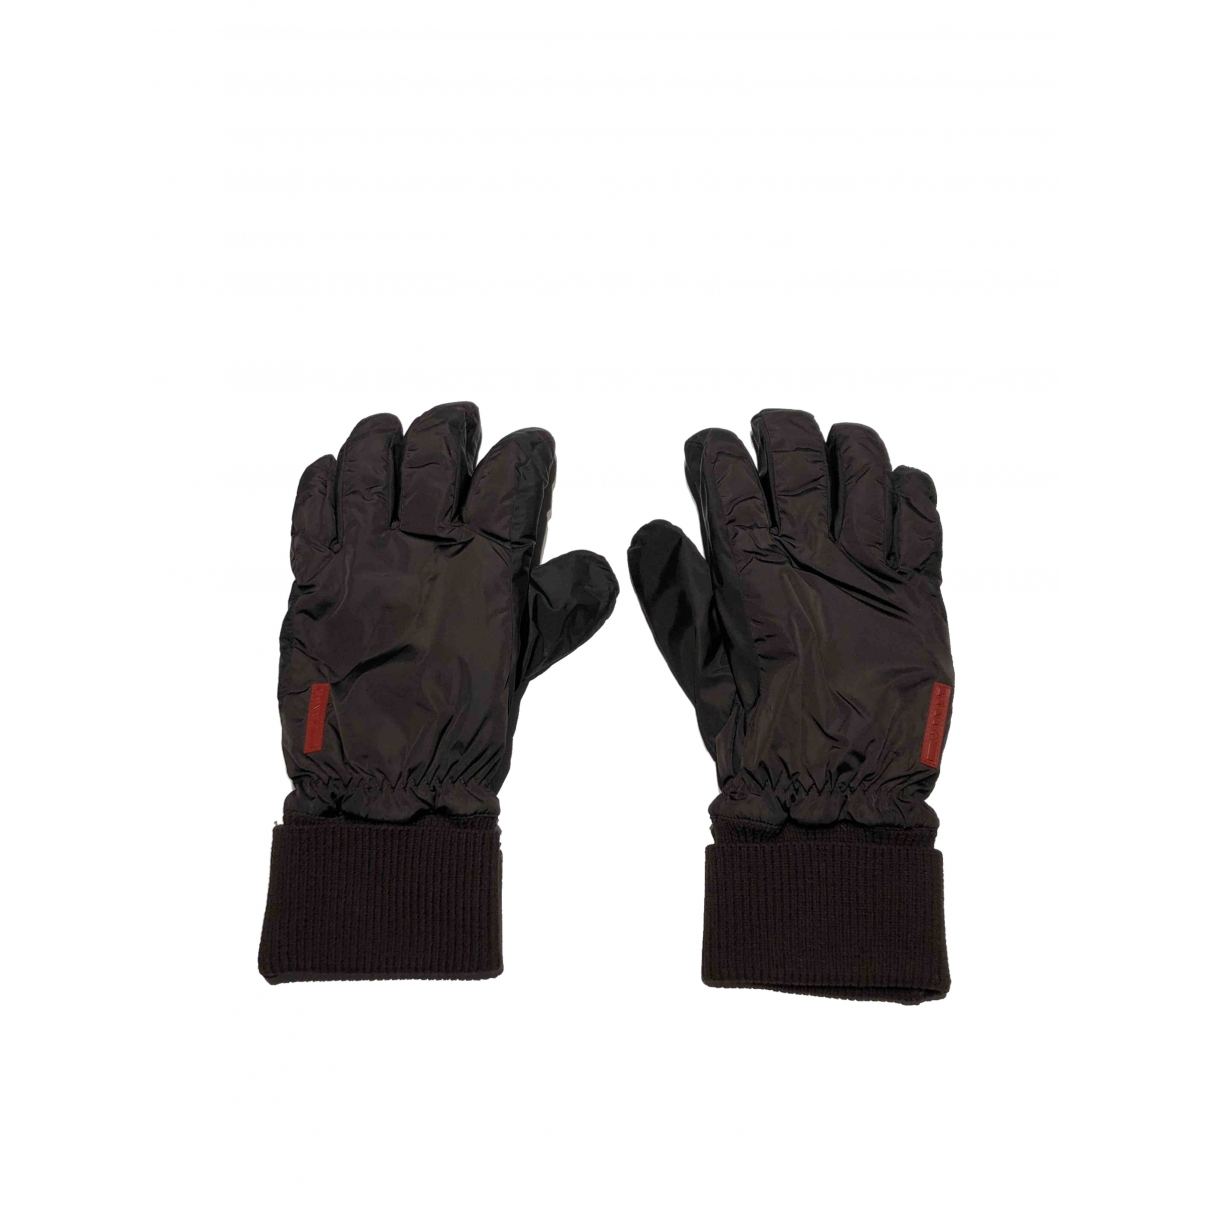 Prada \N Brown Gloves for Men M International